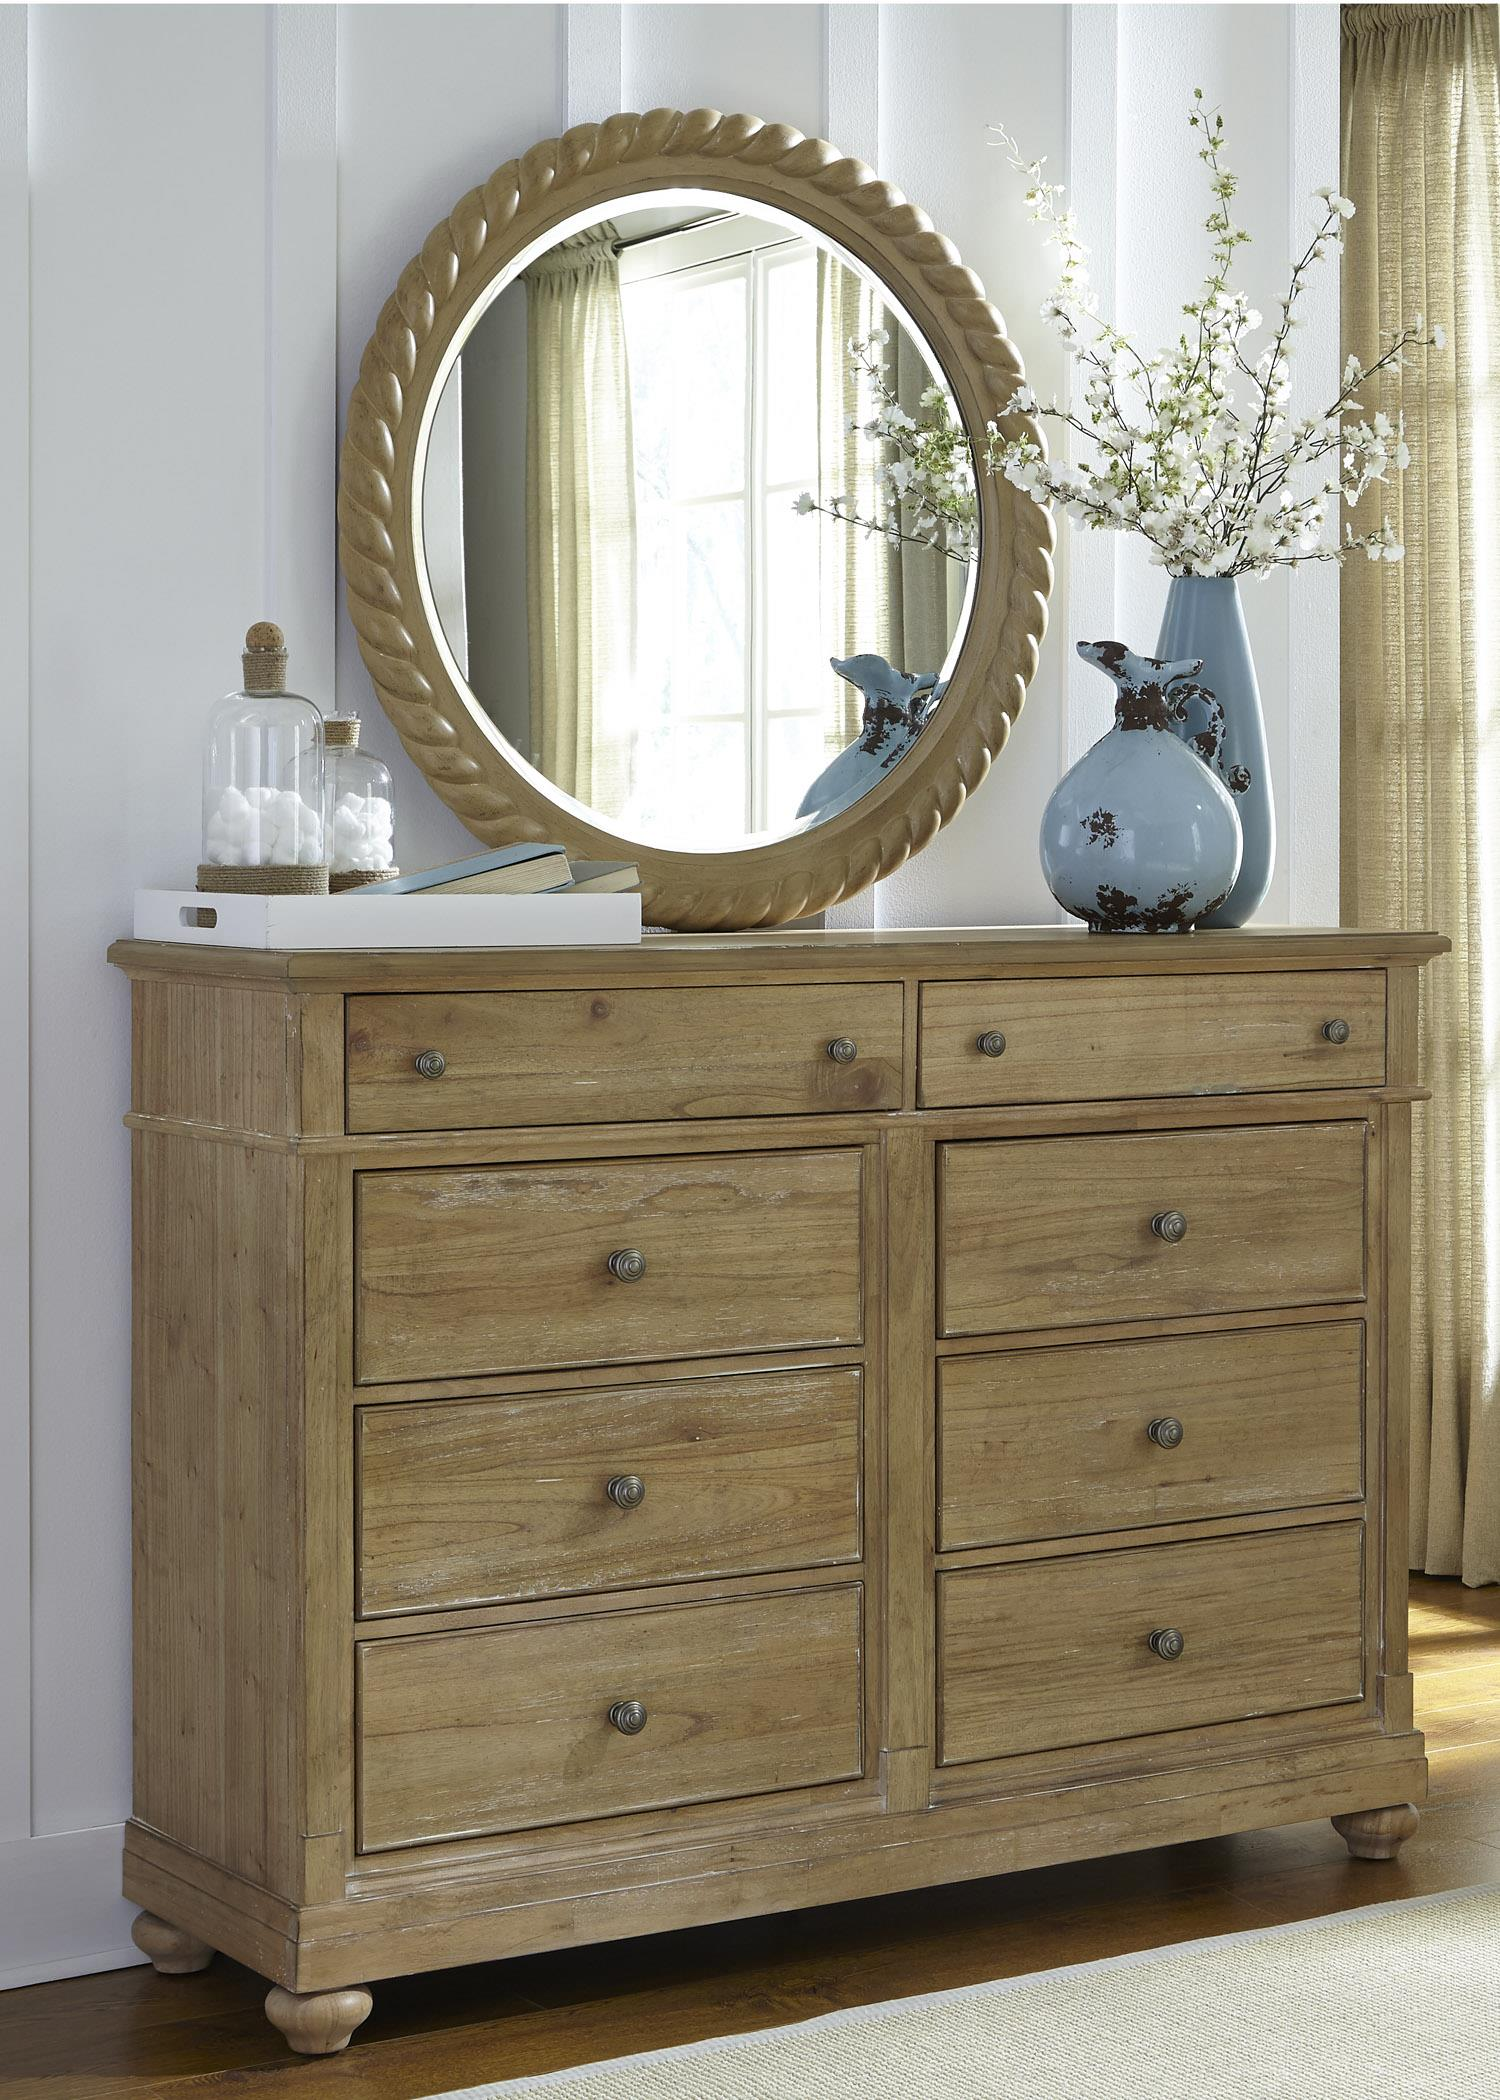 Liberty Furniture Harbor View Dresser and Mirror - Item Number: 531-BR-ODM